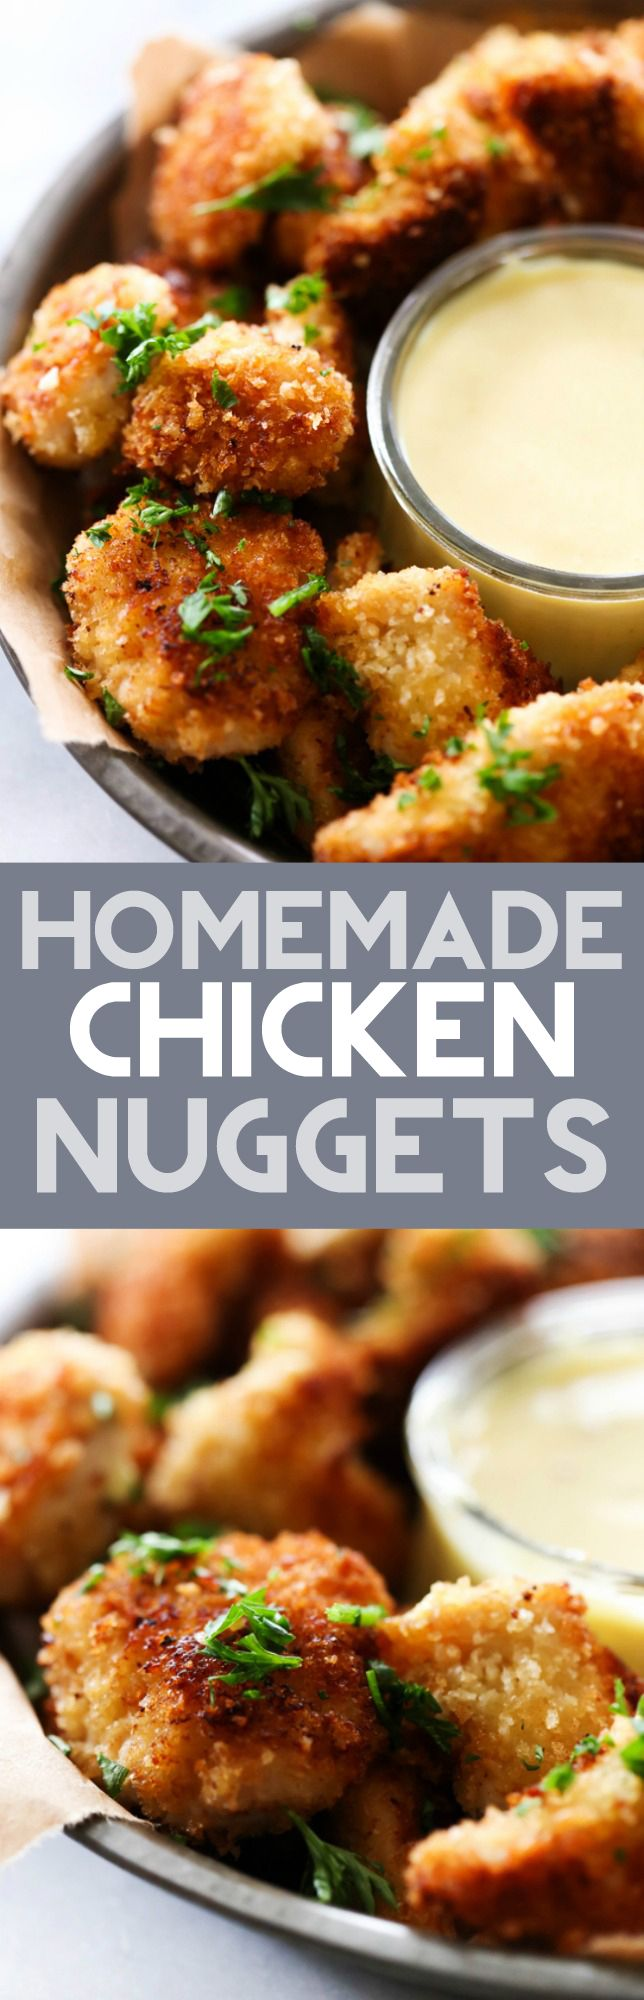 These Homemade Chicken Nuggets are so much healthier and much more delicious than anything you could buy! The outside coating is perfection! This recipe makes for a great meal or appetizer!